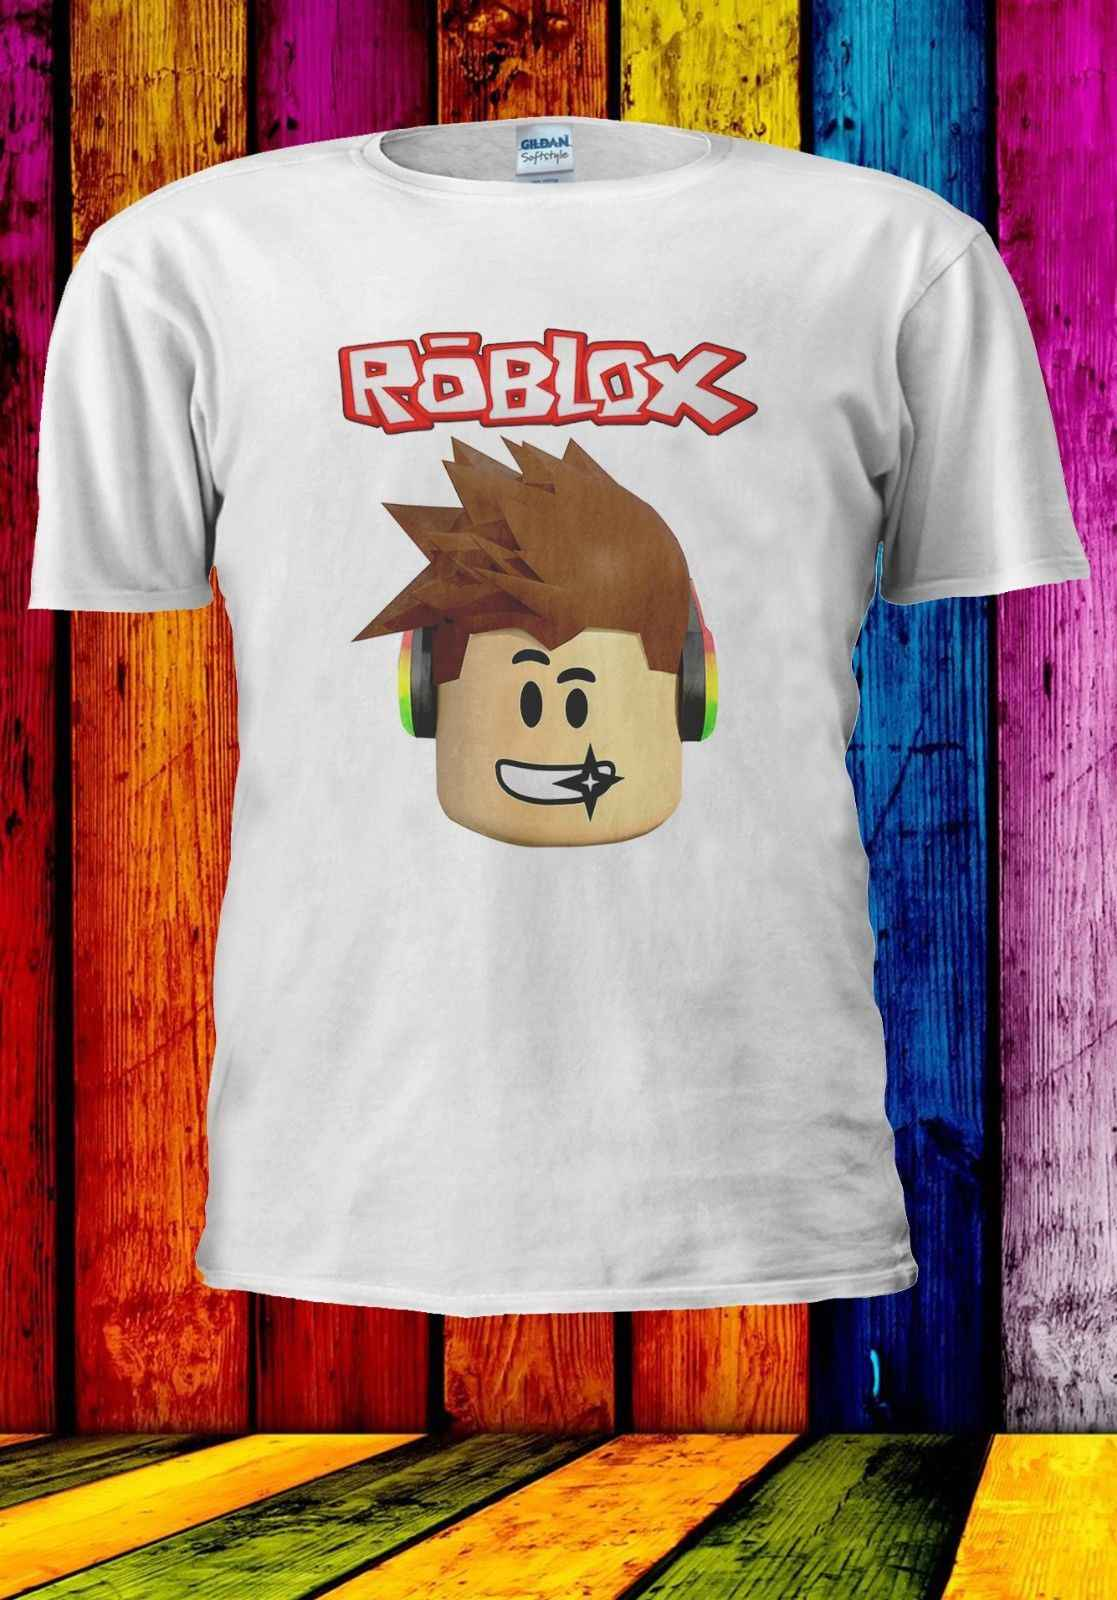 Roblox Characters Online Game Cartoon Awesome Hair Men Women